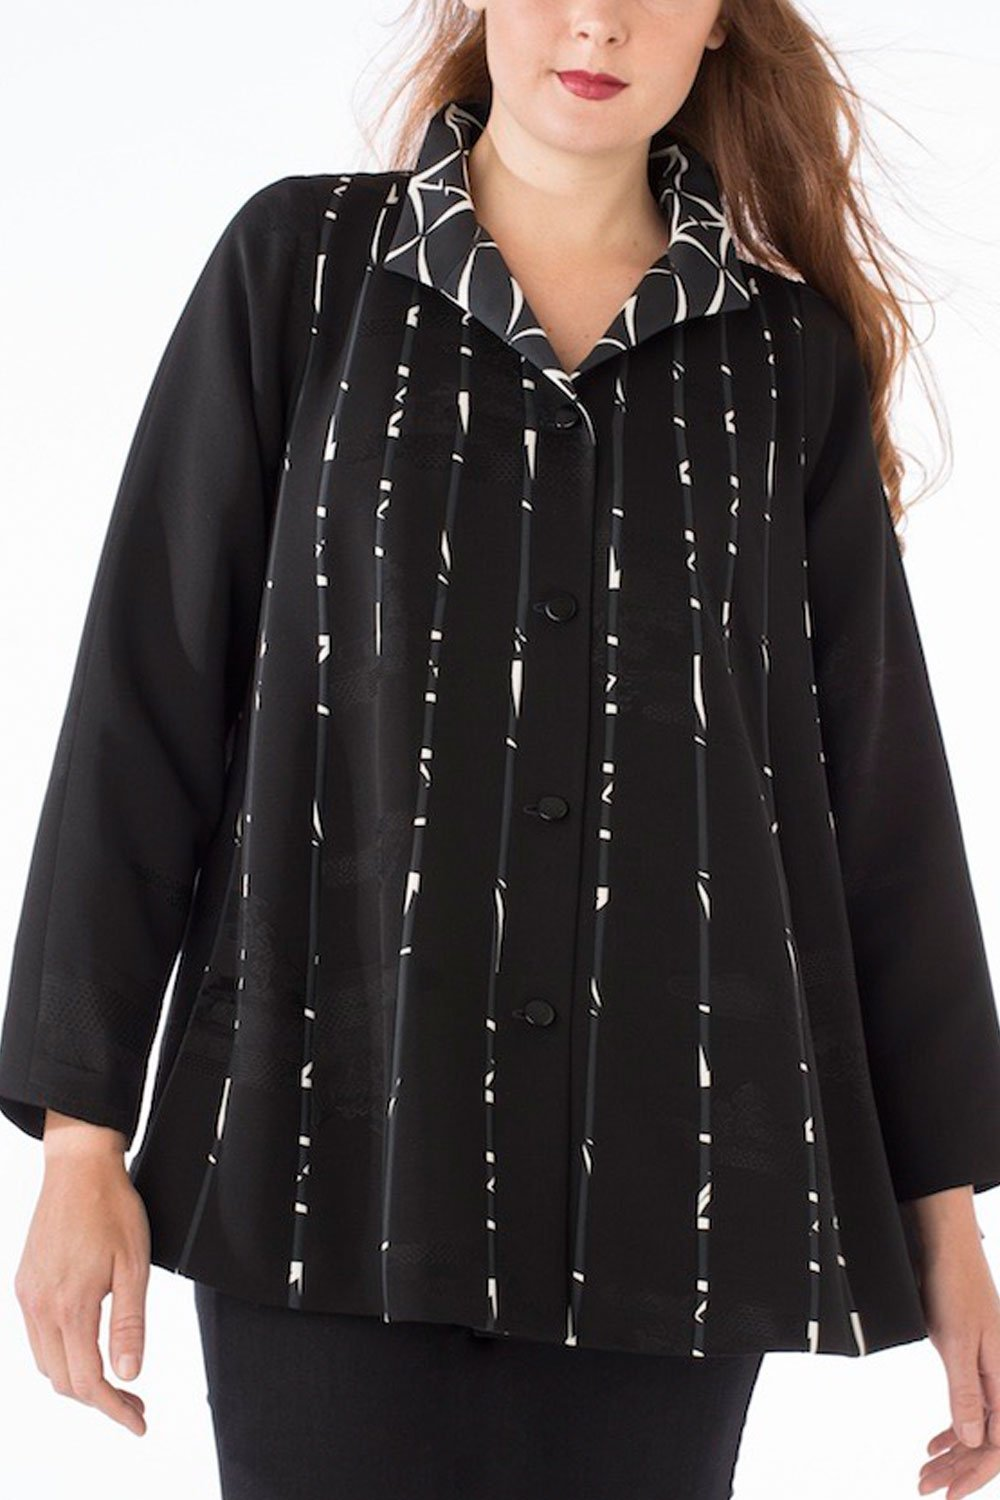 K Swing Coat, black & white | Ann Williamson